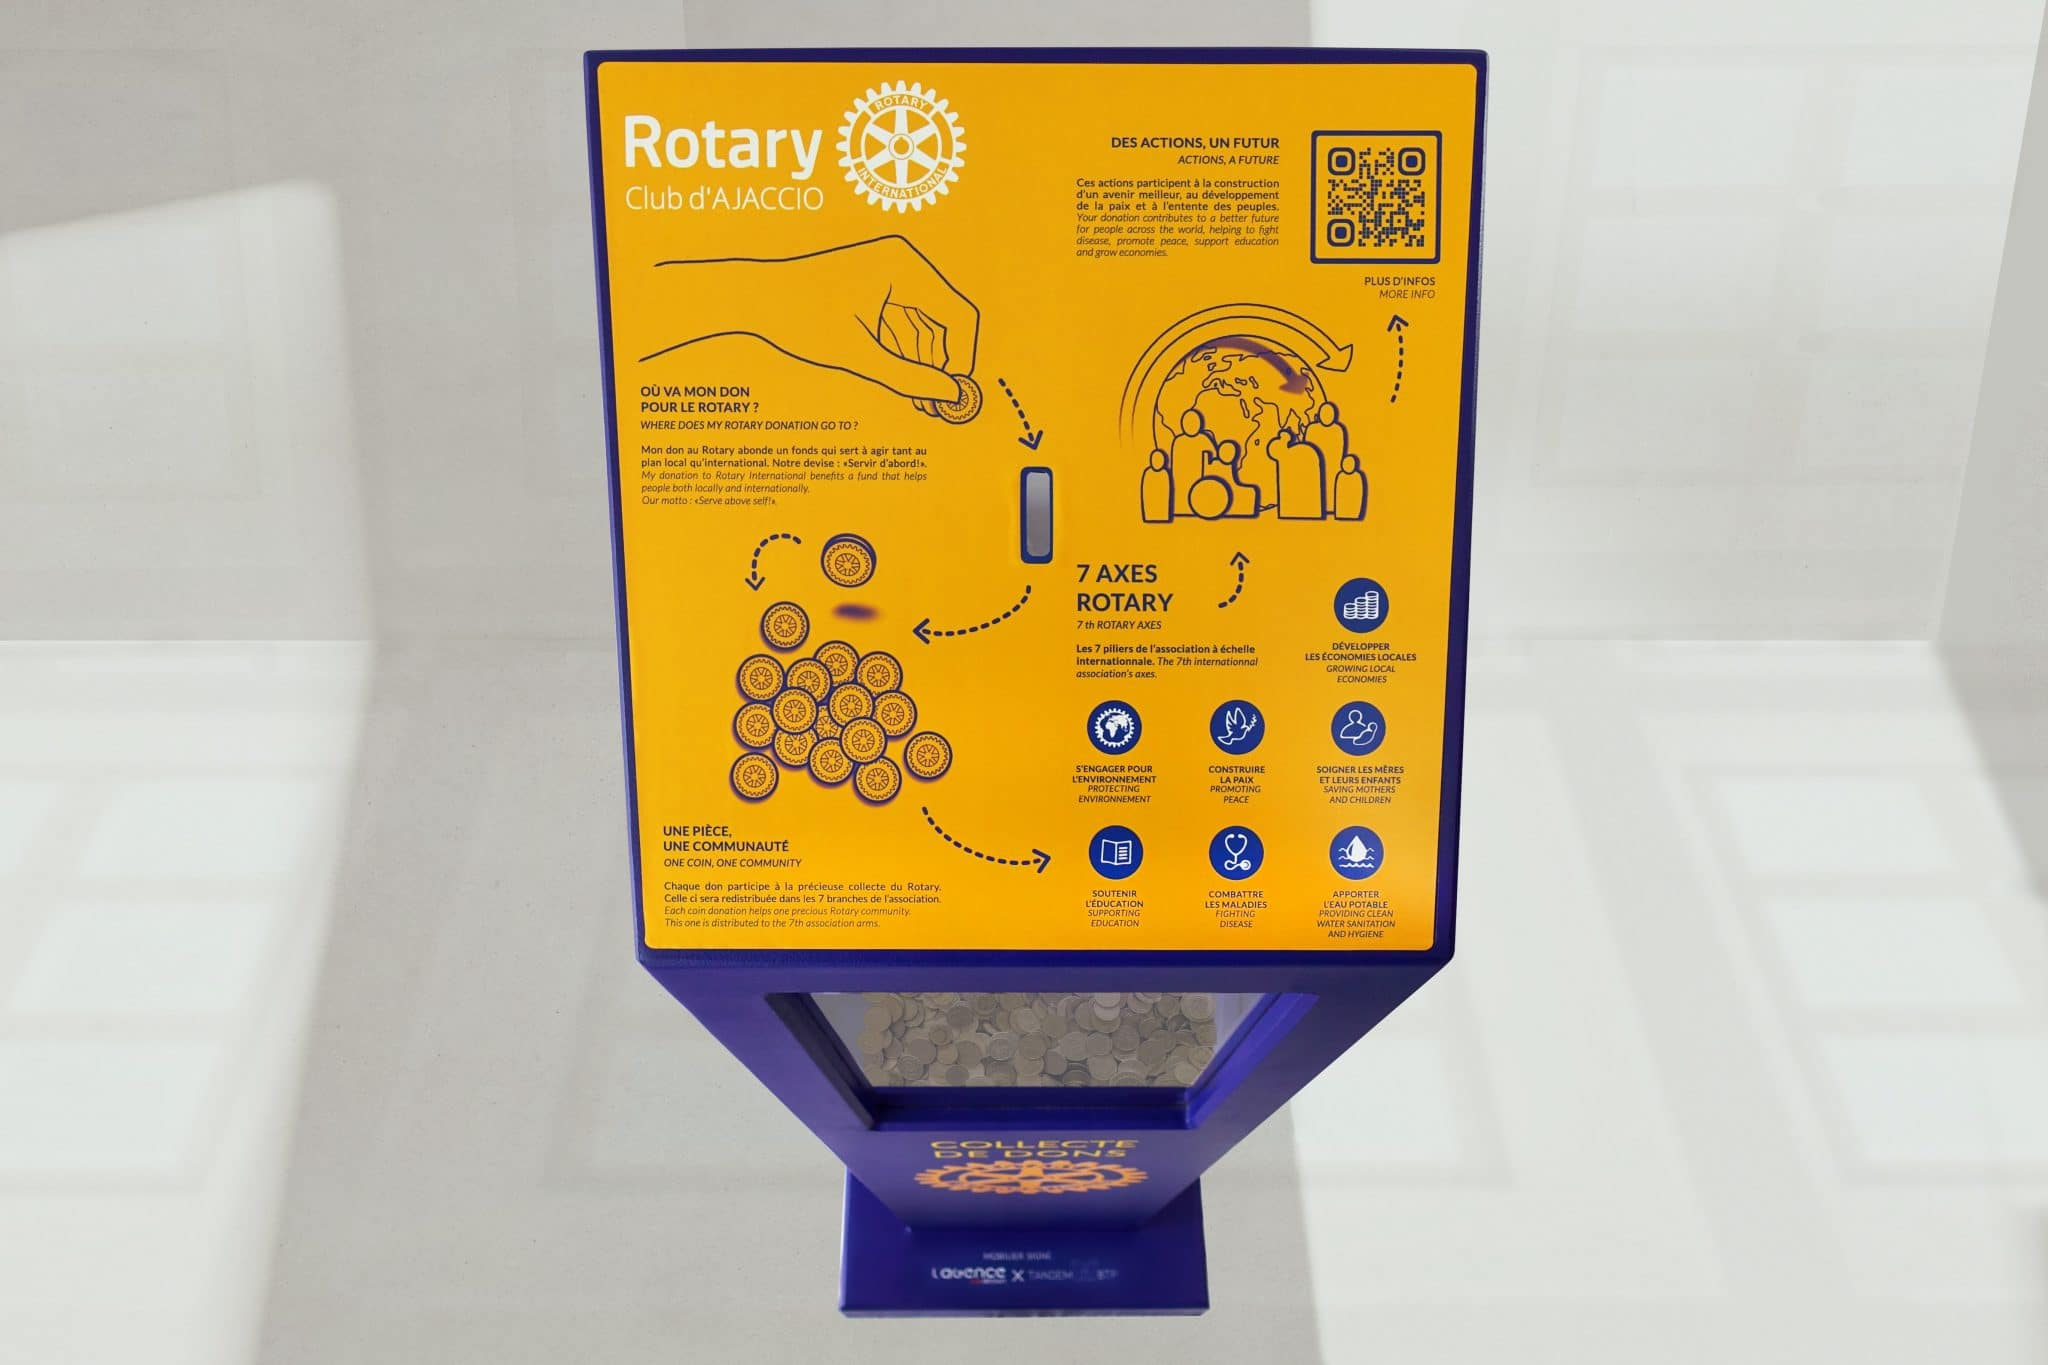 Mobilier_collecte_photo_Rotary_plongé